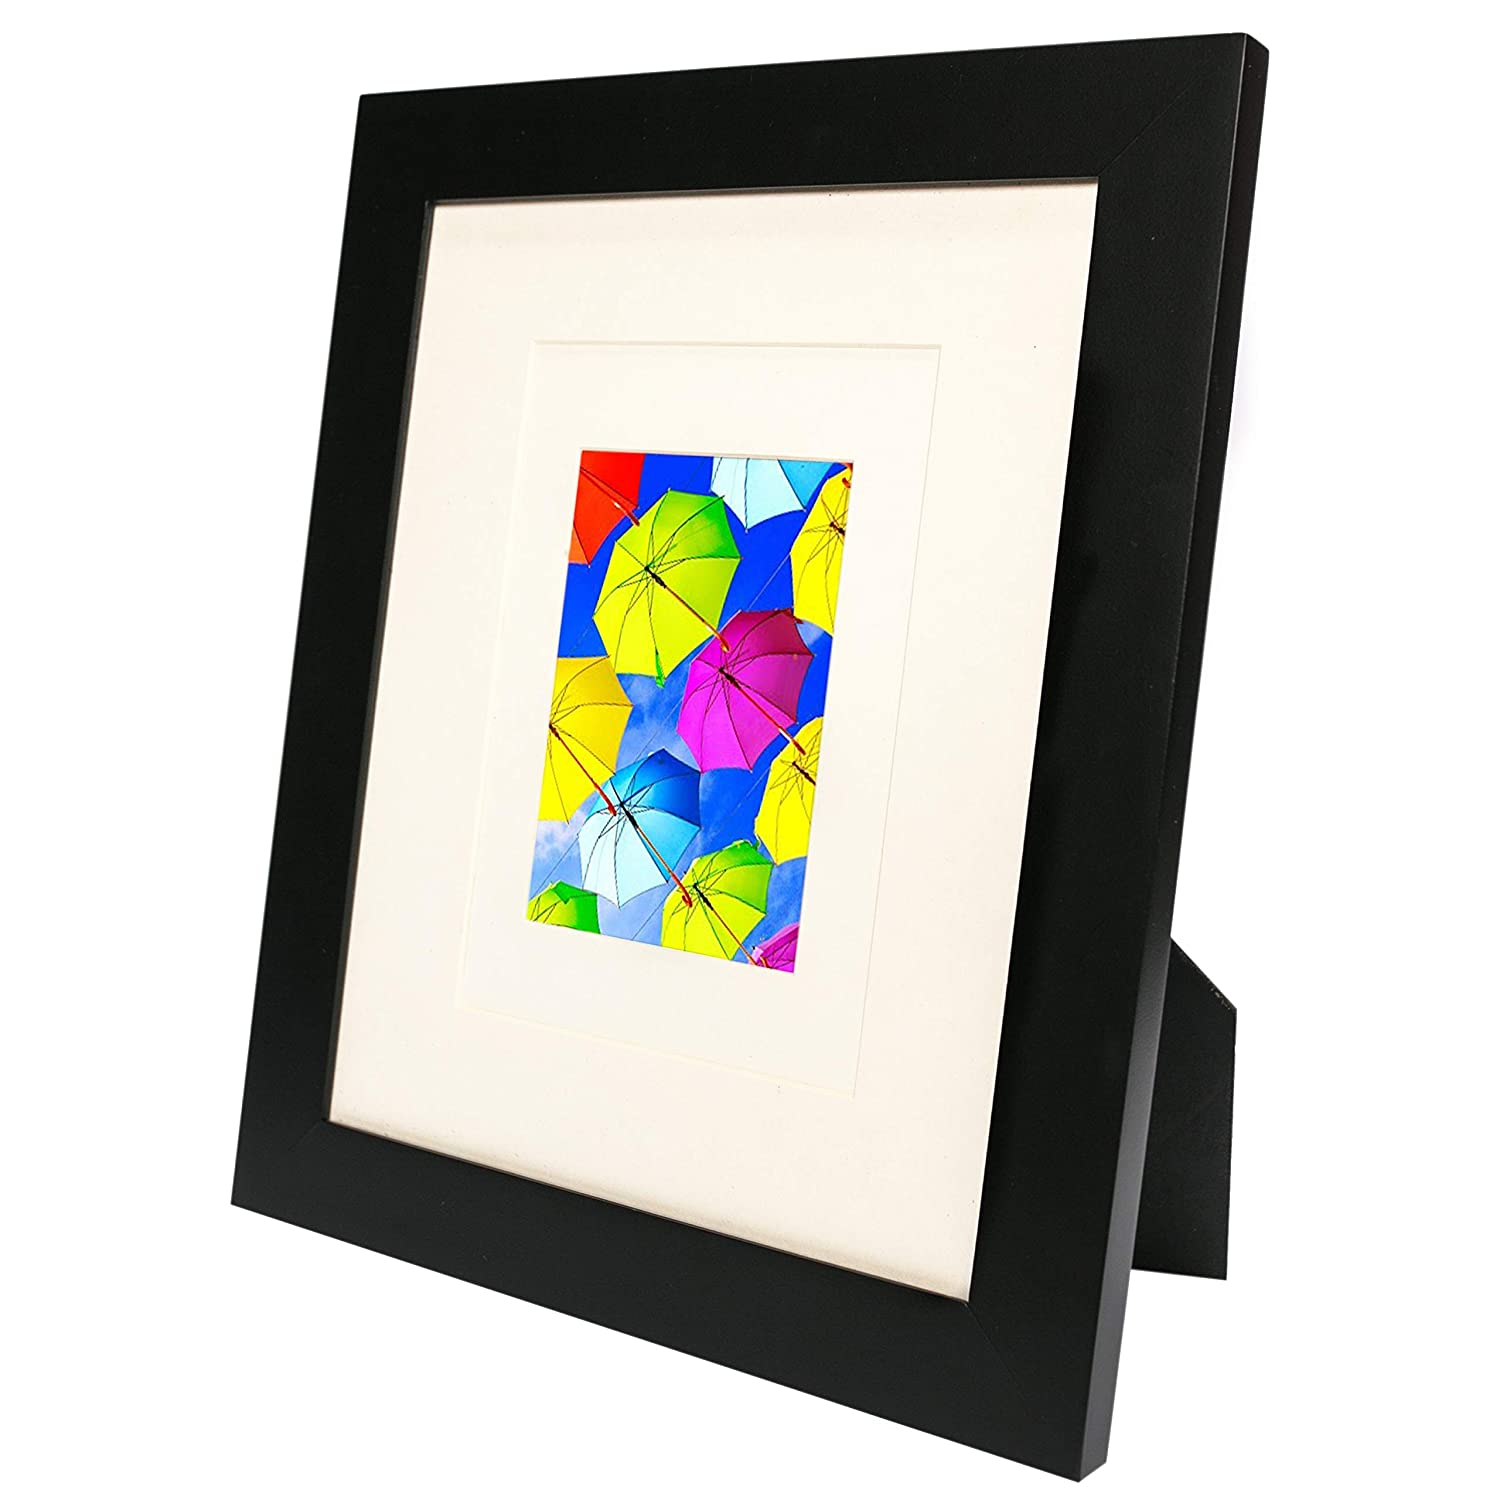 SpoiledHippo 10x13 Picture Frame Black (1 Pack) - Made of Solid Wood with Glass Cover - for Display of 10 by 13 Inch Photos w/o Mat or 8x10 and 5x7 with Mats - Wall and Tabletop - Hanging or Standing